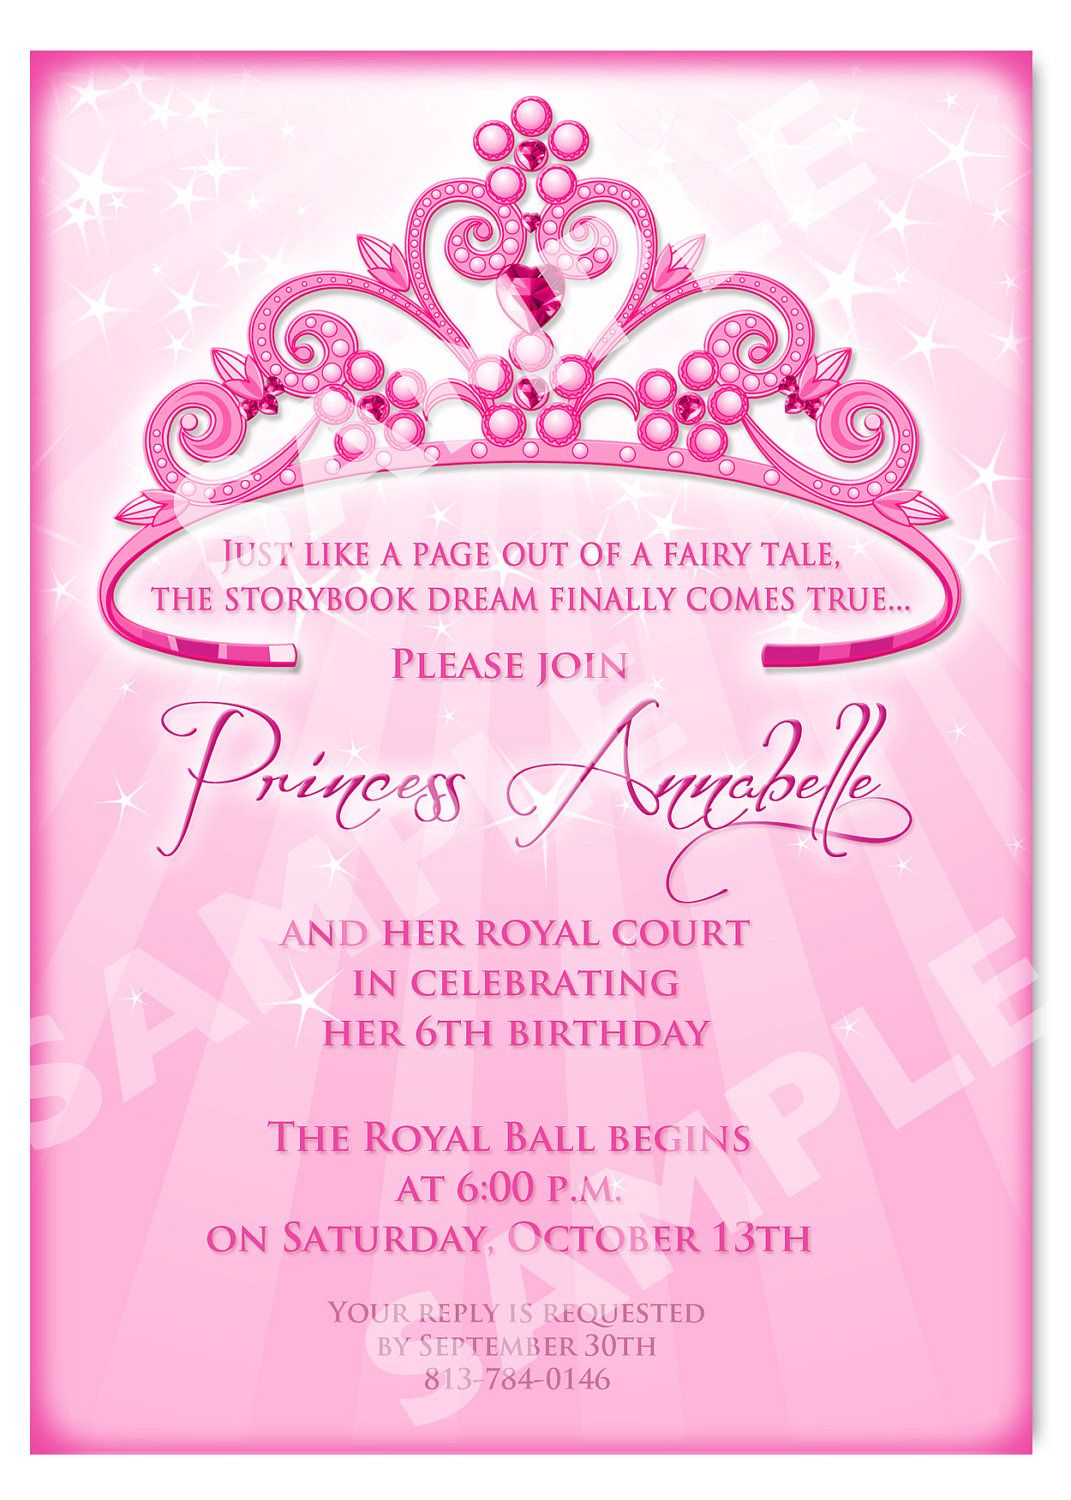 Printable Princess Invitation Cards | birthday party ideas